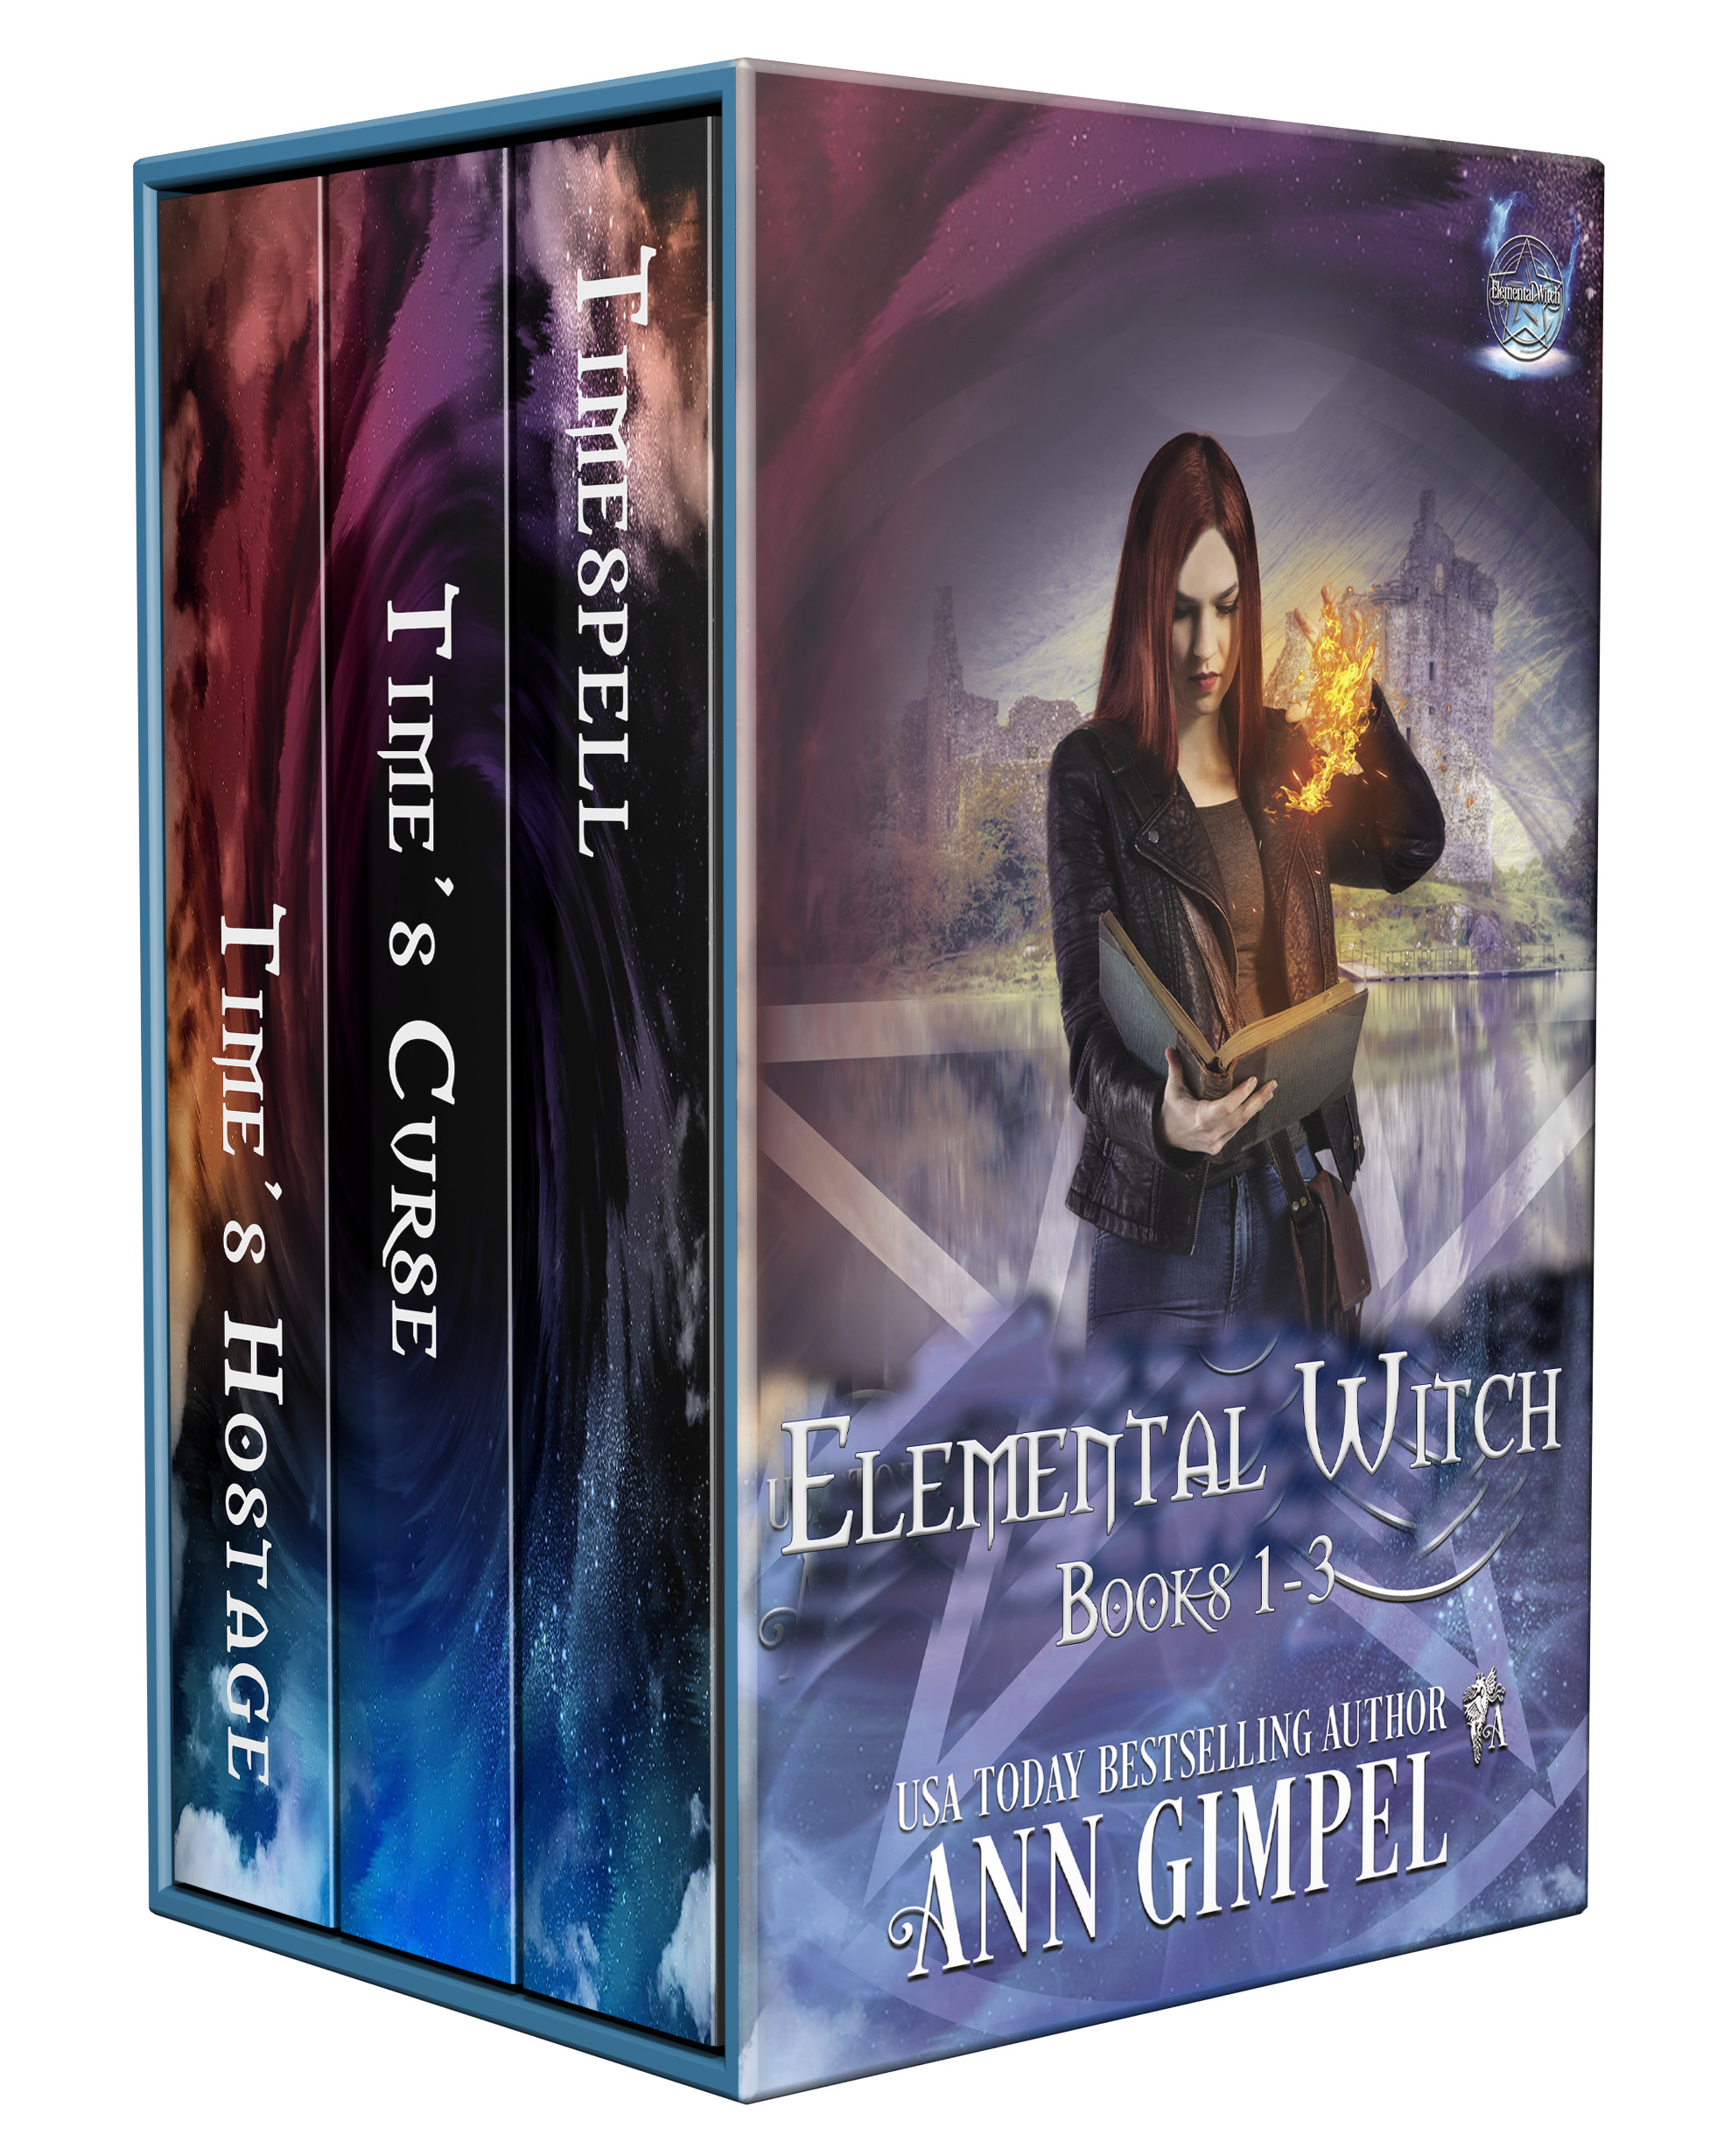 Elemental Witch, Books 1-3